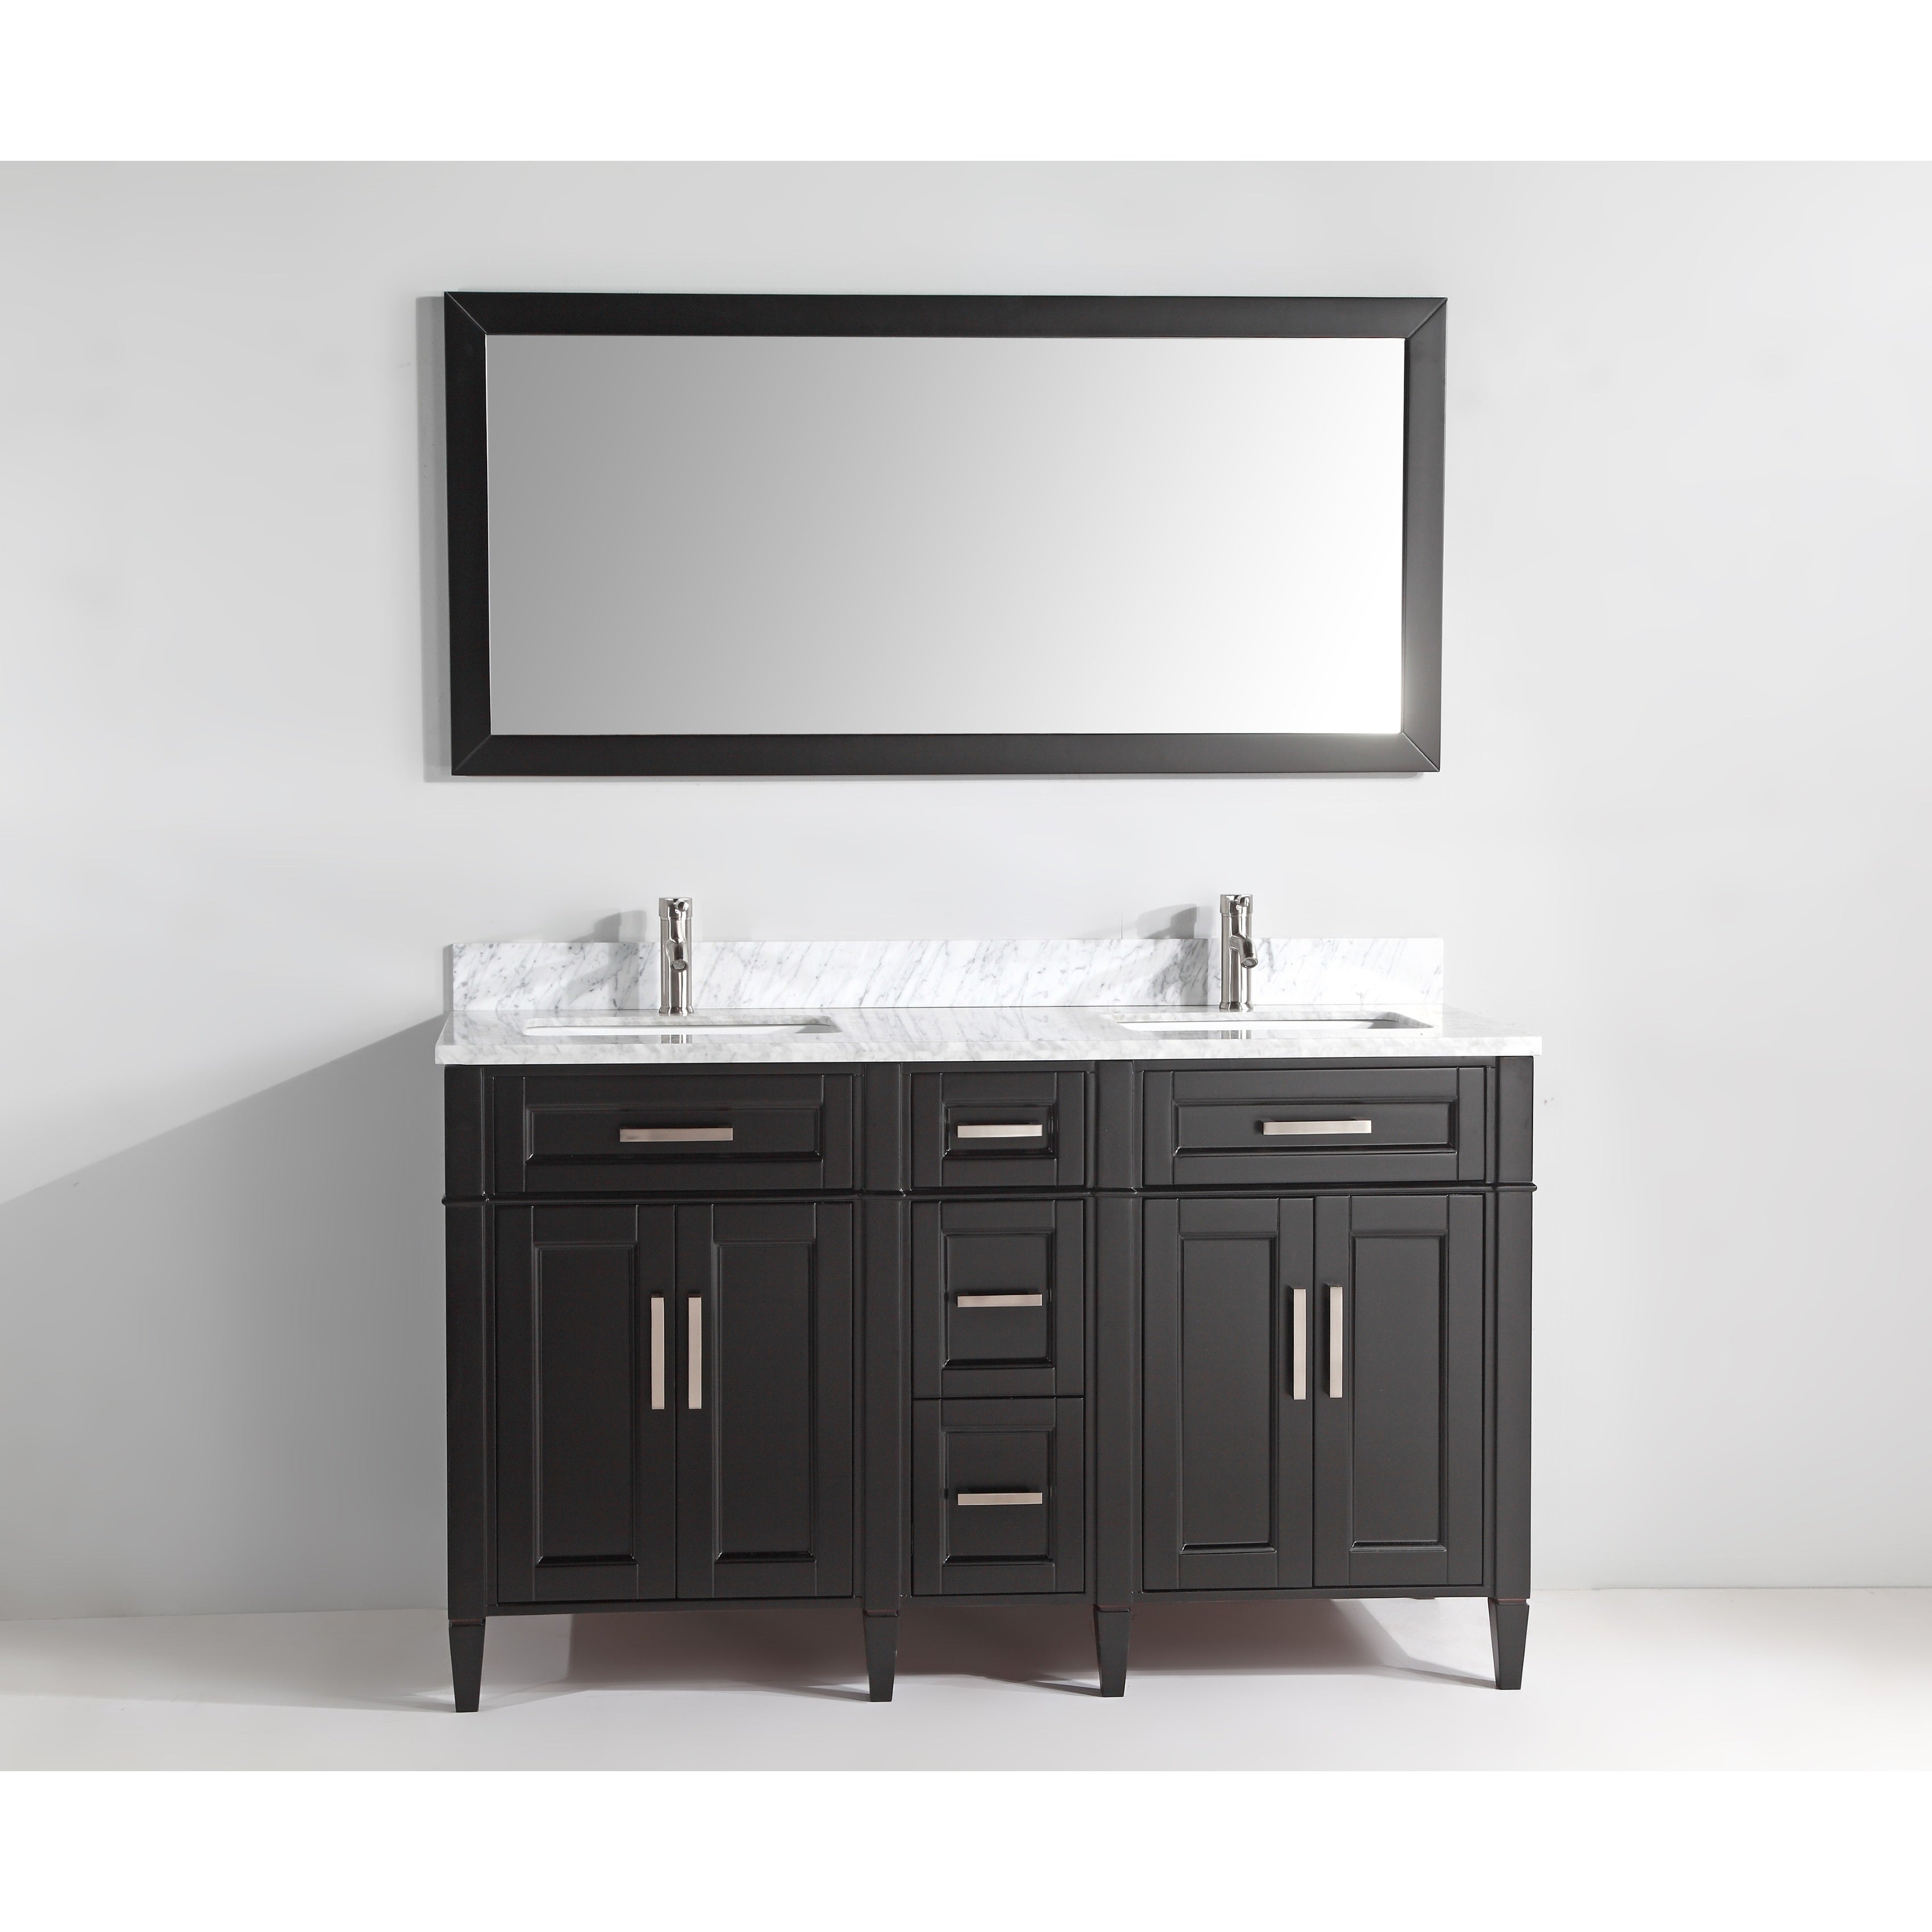 inch fresh sink excellent and decoration vanity ideas double home designing vanities interior bathroom